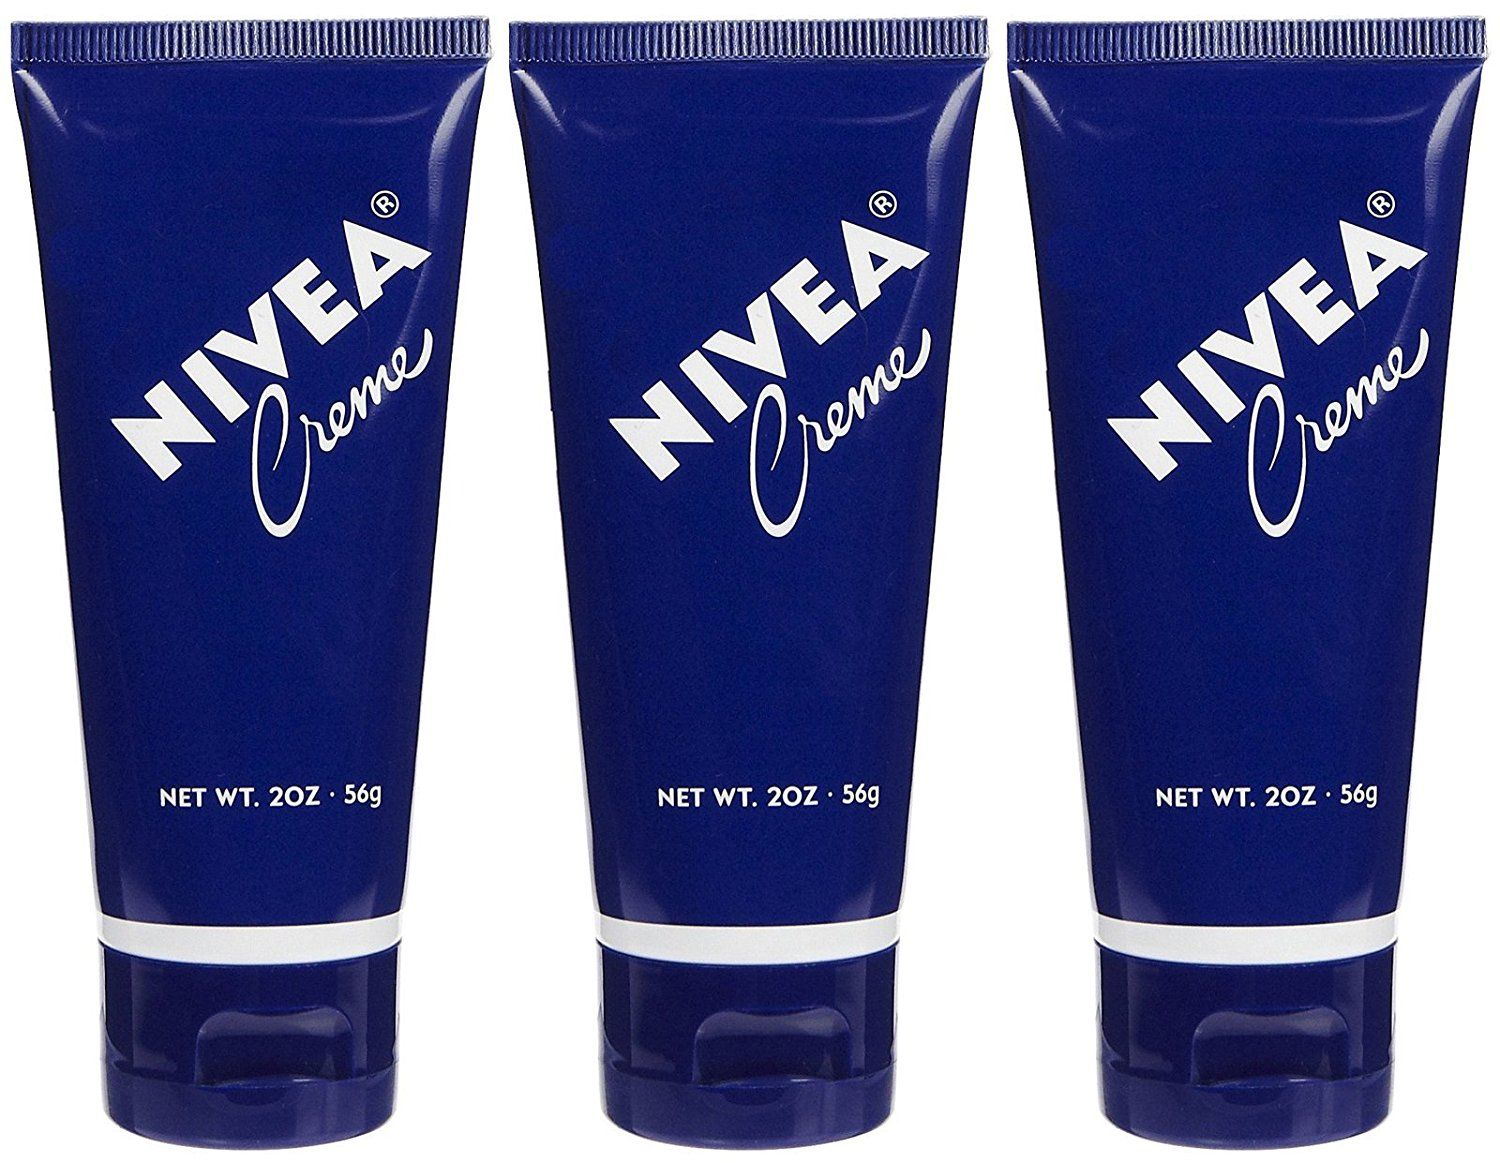 Nivea Moisturizing Body Crème 2 oz 3 pk *** Want